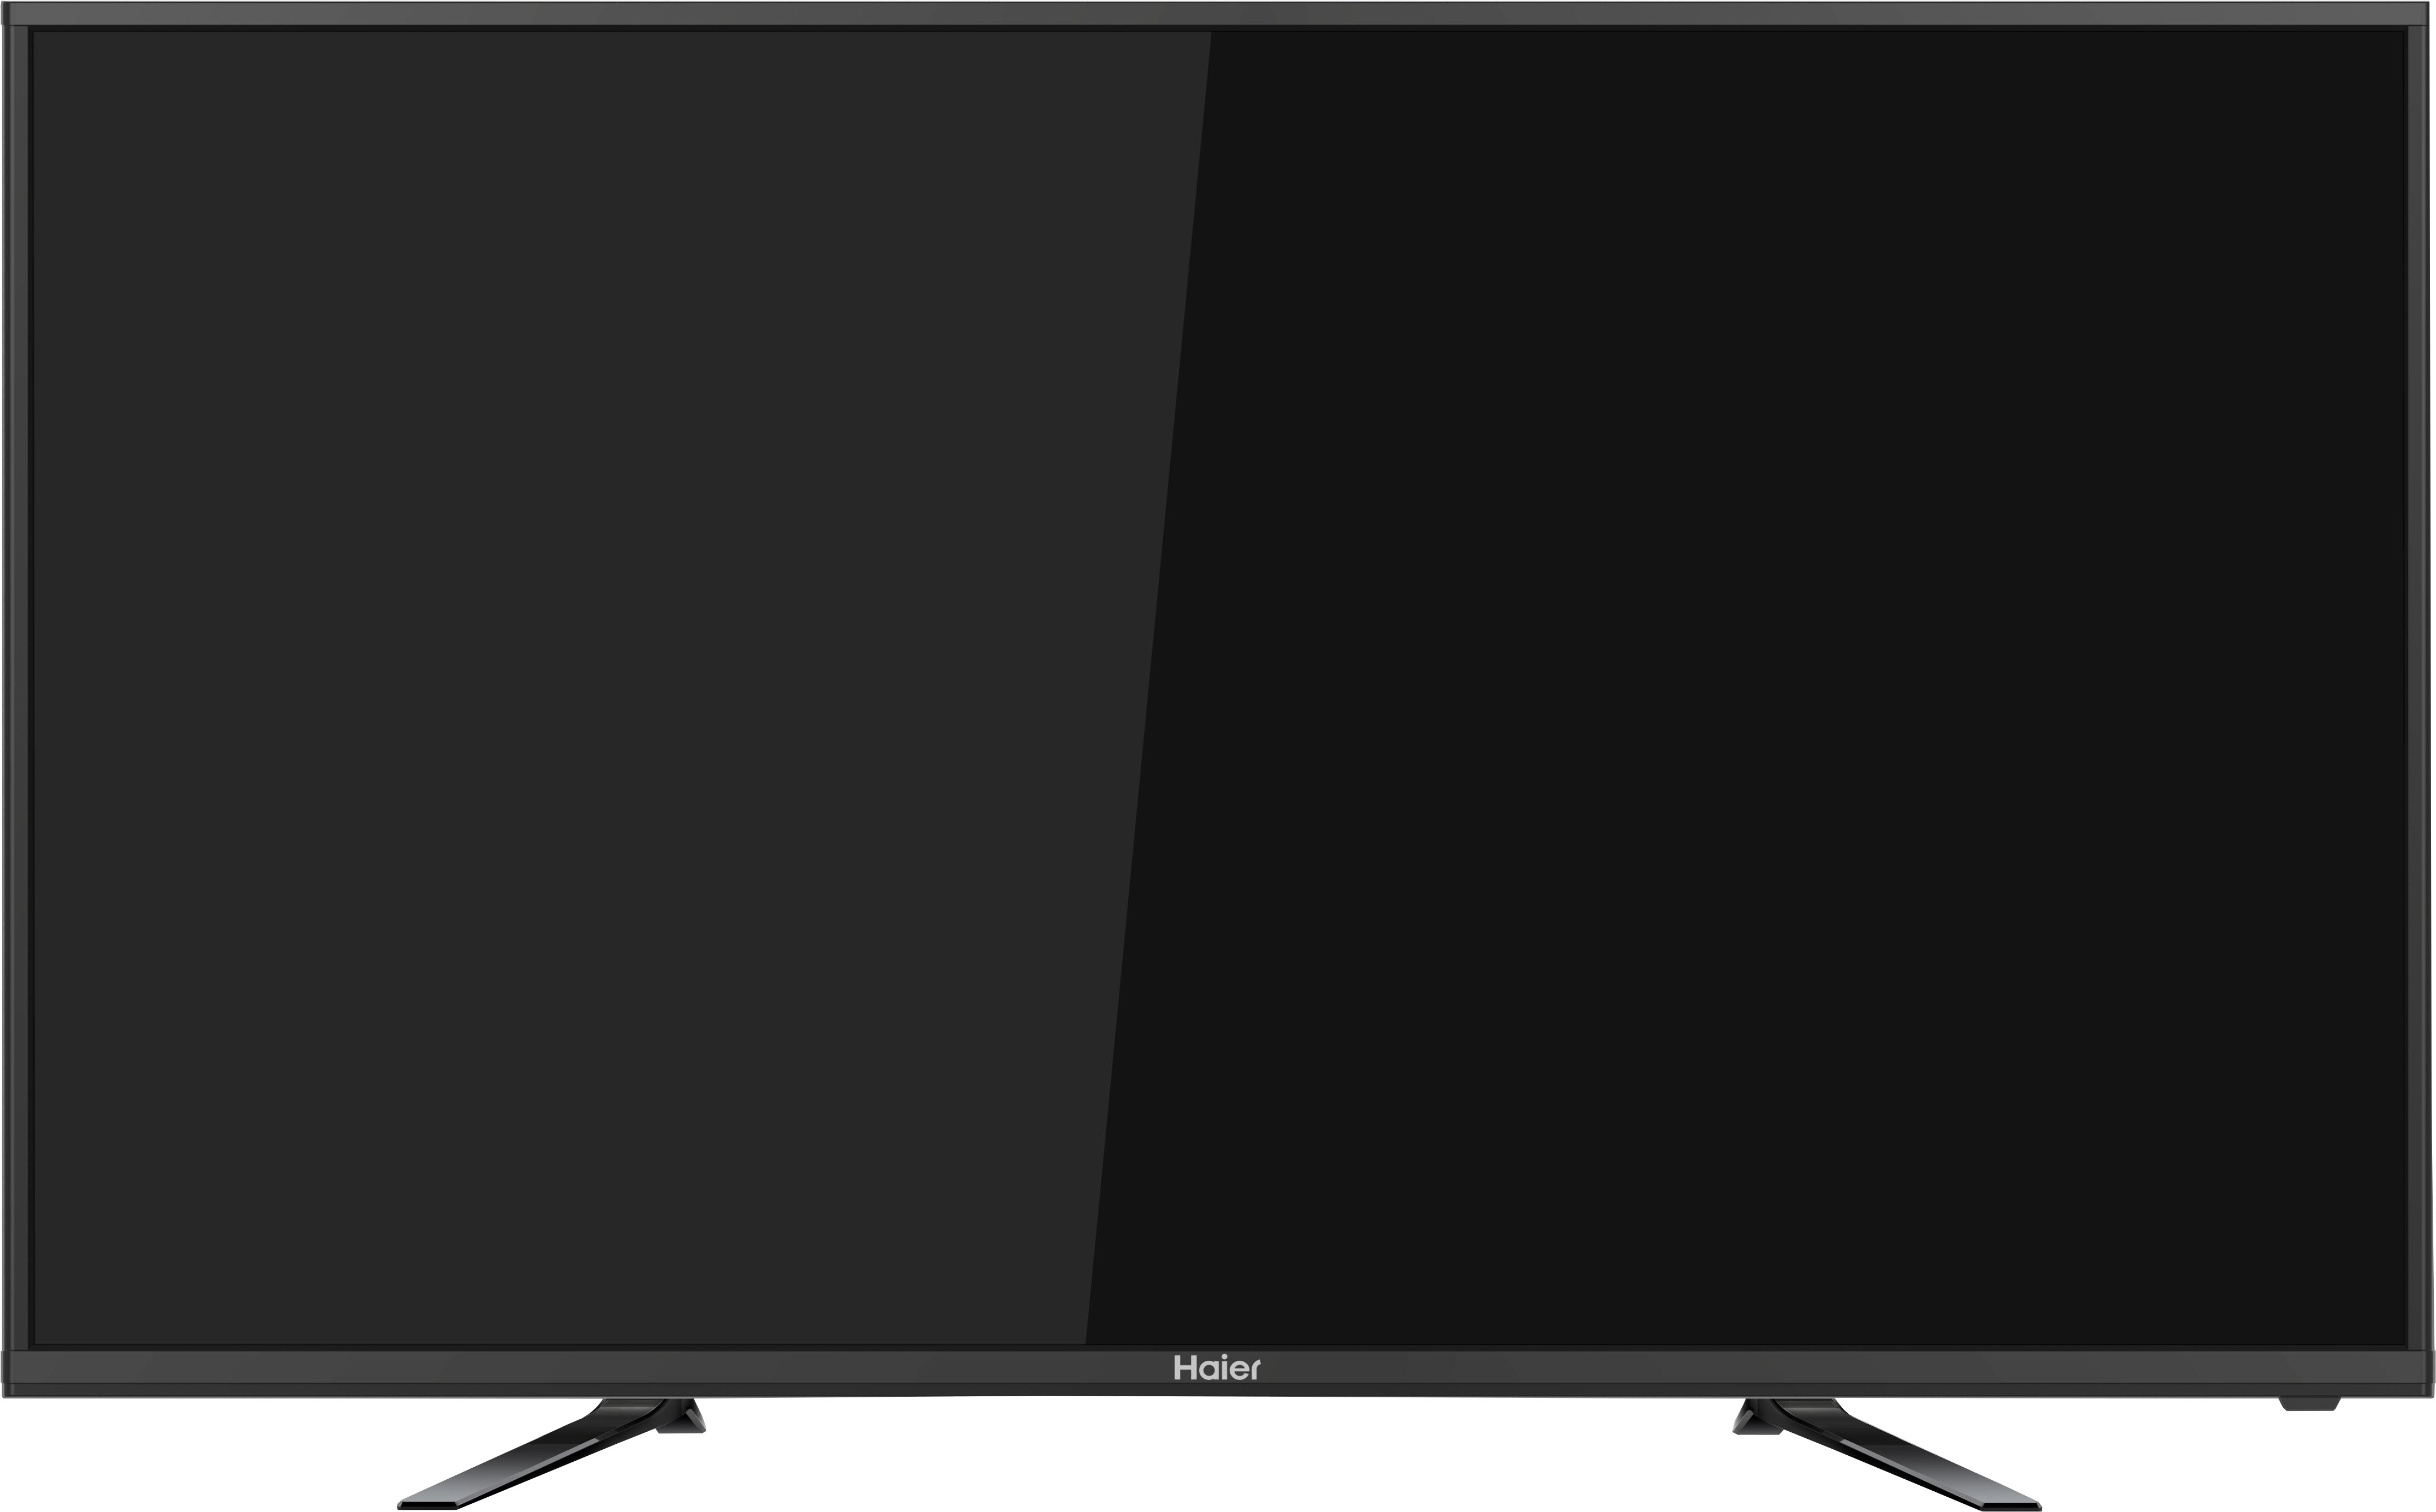 haier le24b8000 60 cm 23 6 led tv available at flipkart. Black Bedroom Furniture Sets. Home Design Ideas